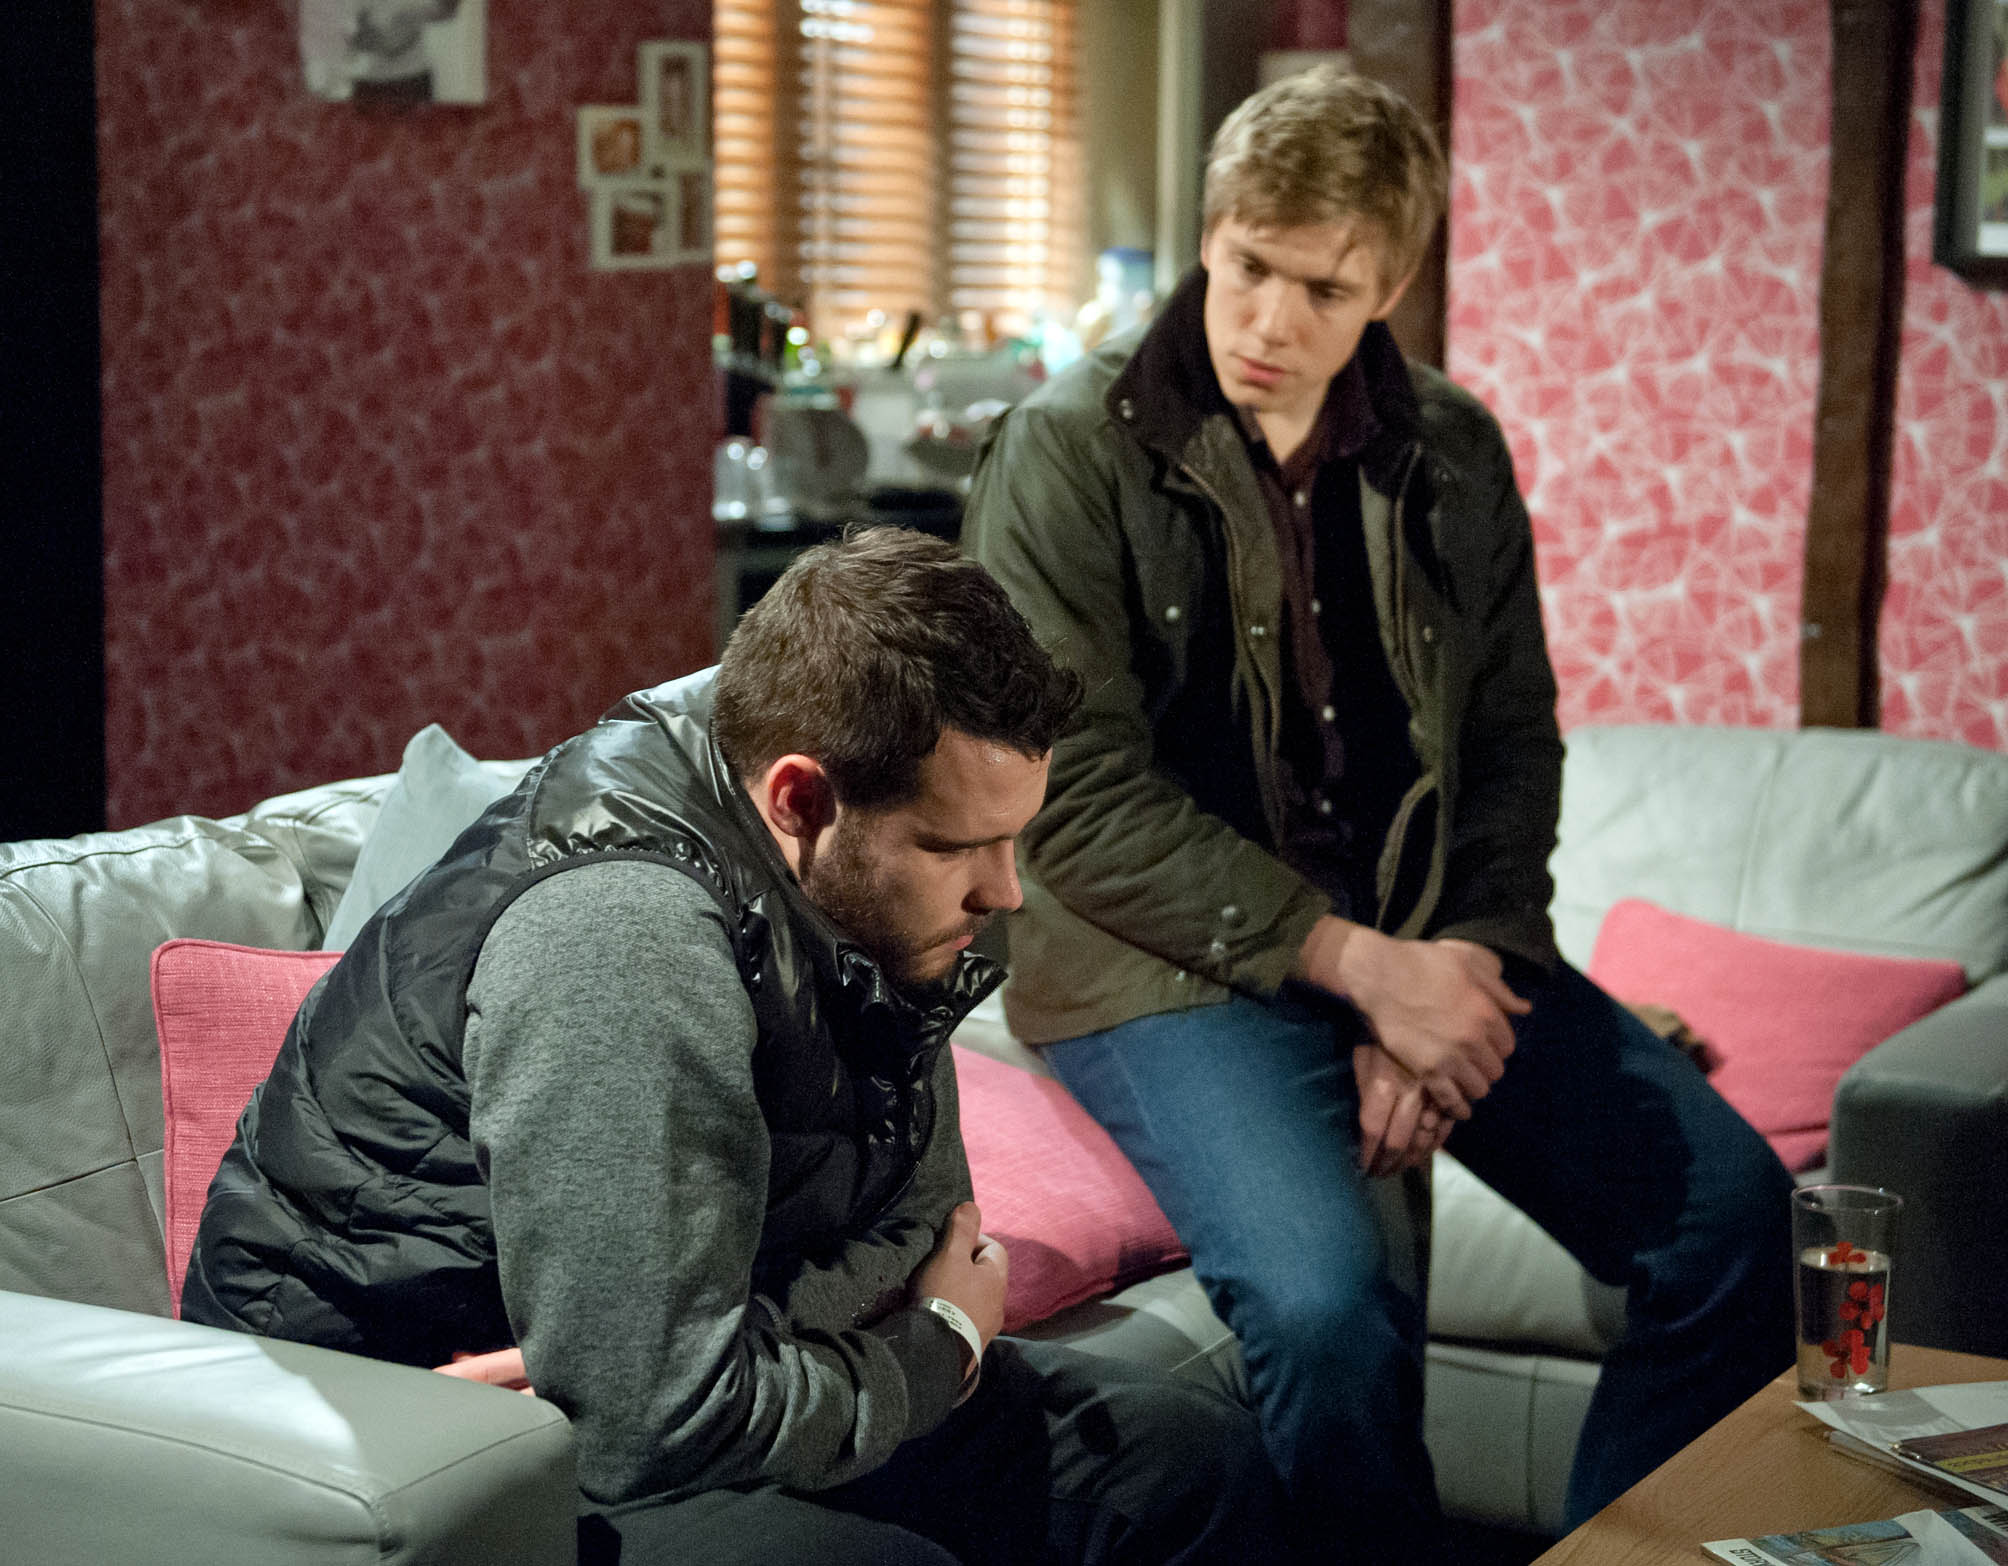 Editorial use only Mandatory Credit: Photo by ITV/REX/Shutterstock (8965215an) 7405 Thursday 21 January 2016 - 2nd ep Robert Sugden, as played by Ryan Hawley, feels out of his depth as Aaron Livesy, as played by Danny Miller, continues to confide in him. Robert urges Aaron to open up to his mum but he refuses and Aaron's relieved when Robert agrees not to tell anyone promising him he's not alone. 'Emmerdale' TV Series - Jan 2016